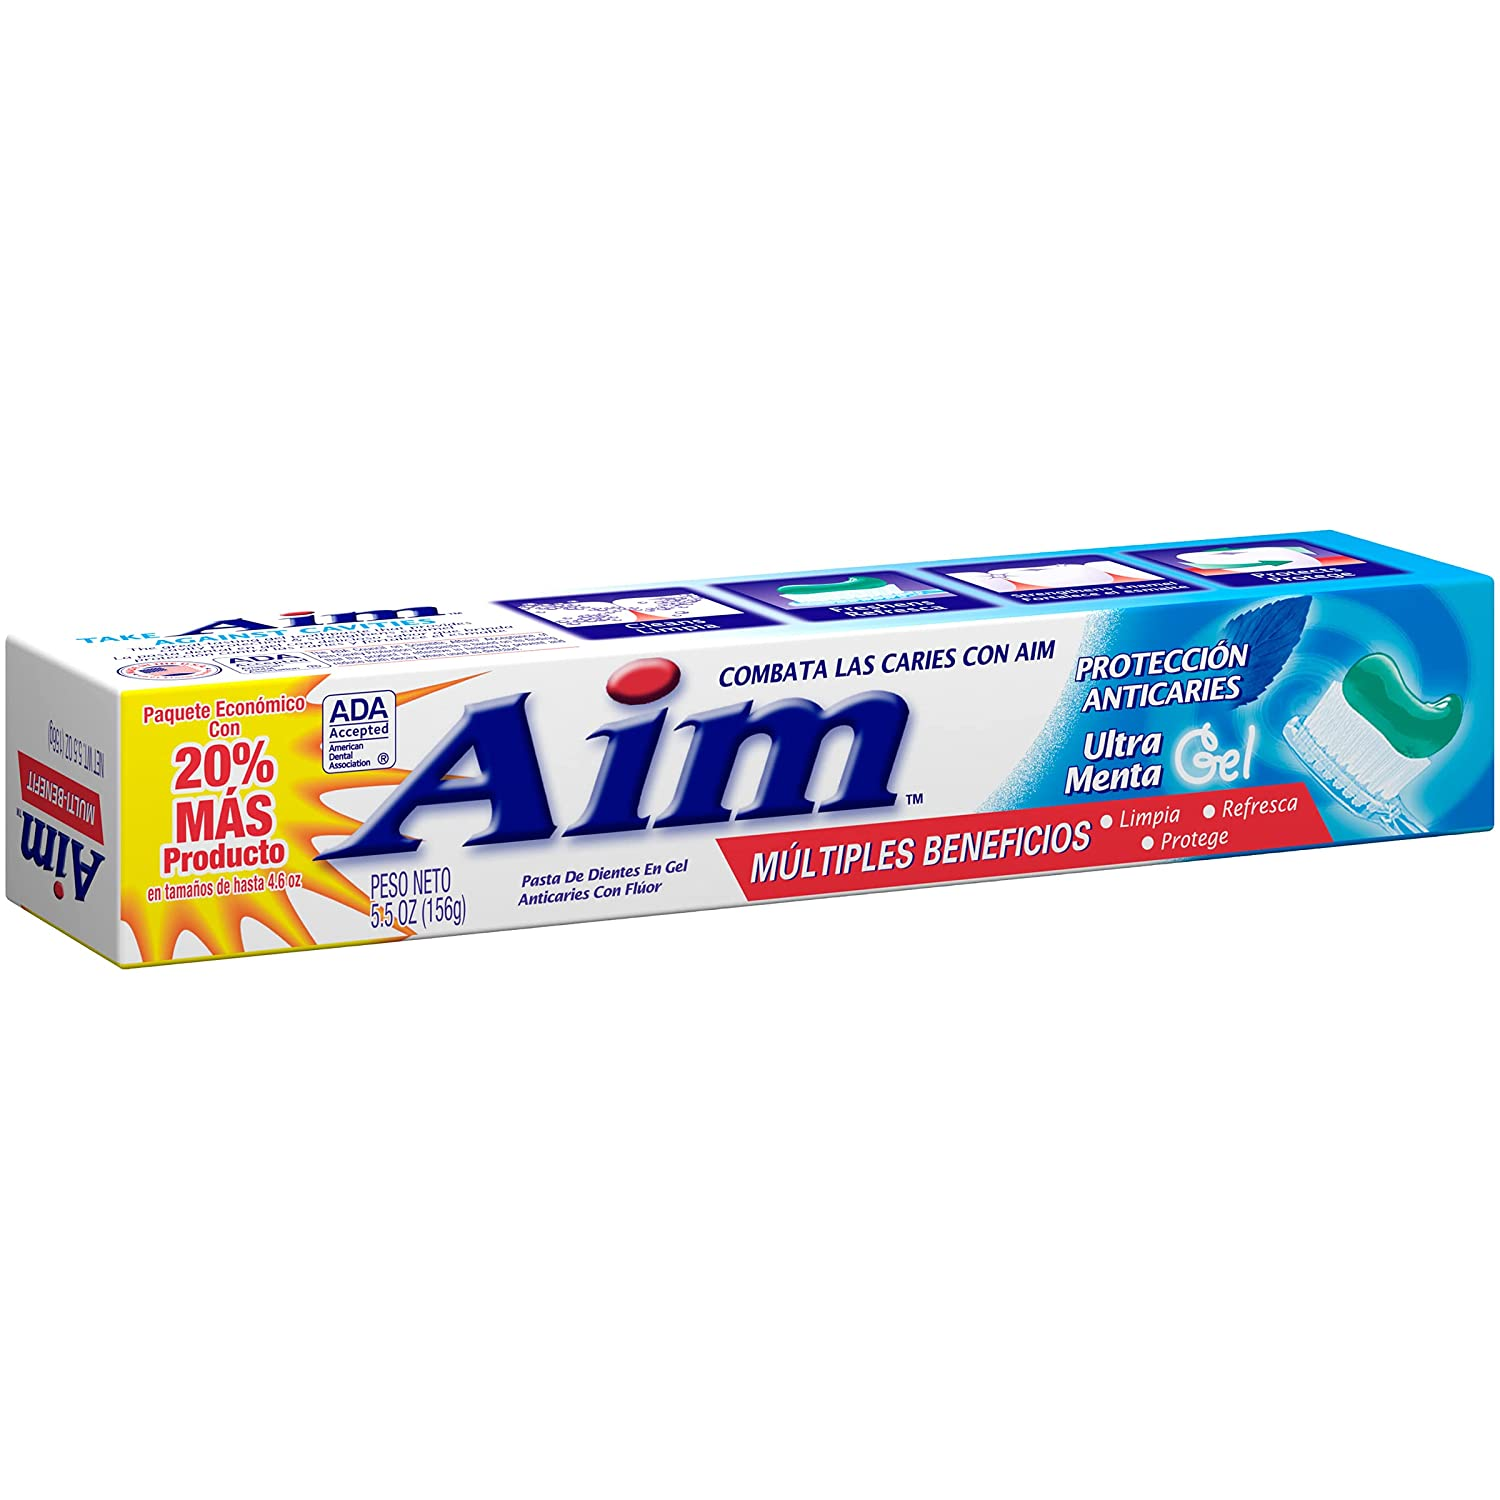 Aim Cavity Protection Direct sale of manufacturer Anticavity Fluoride Special Campaign Mint Toothpaste Ultra